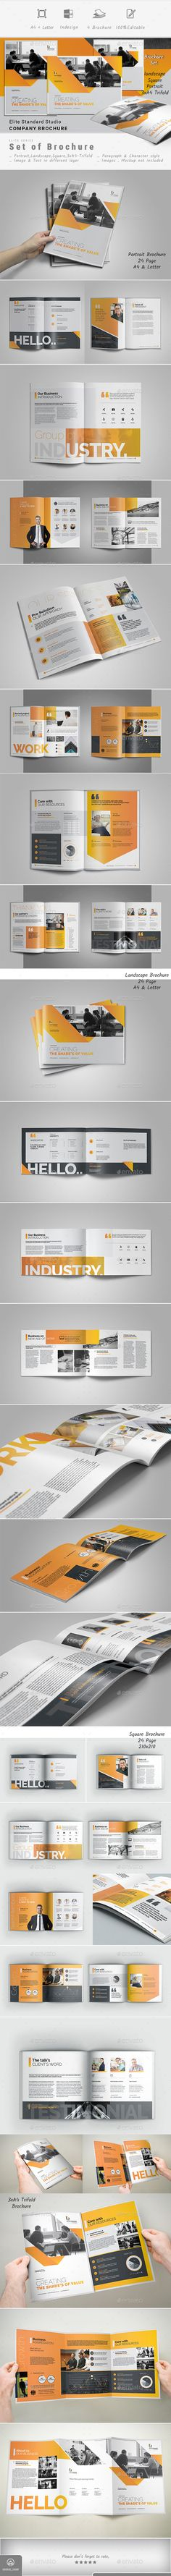 Brochure Pack - Corporate Brochures Download here : https://graphicriver.net/item/brochure-pack/19271601?s_rank=124&ref=Al-fatih